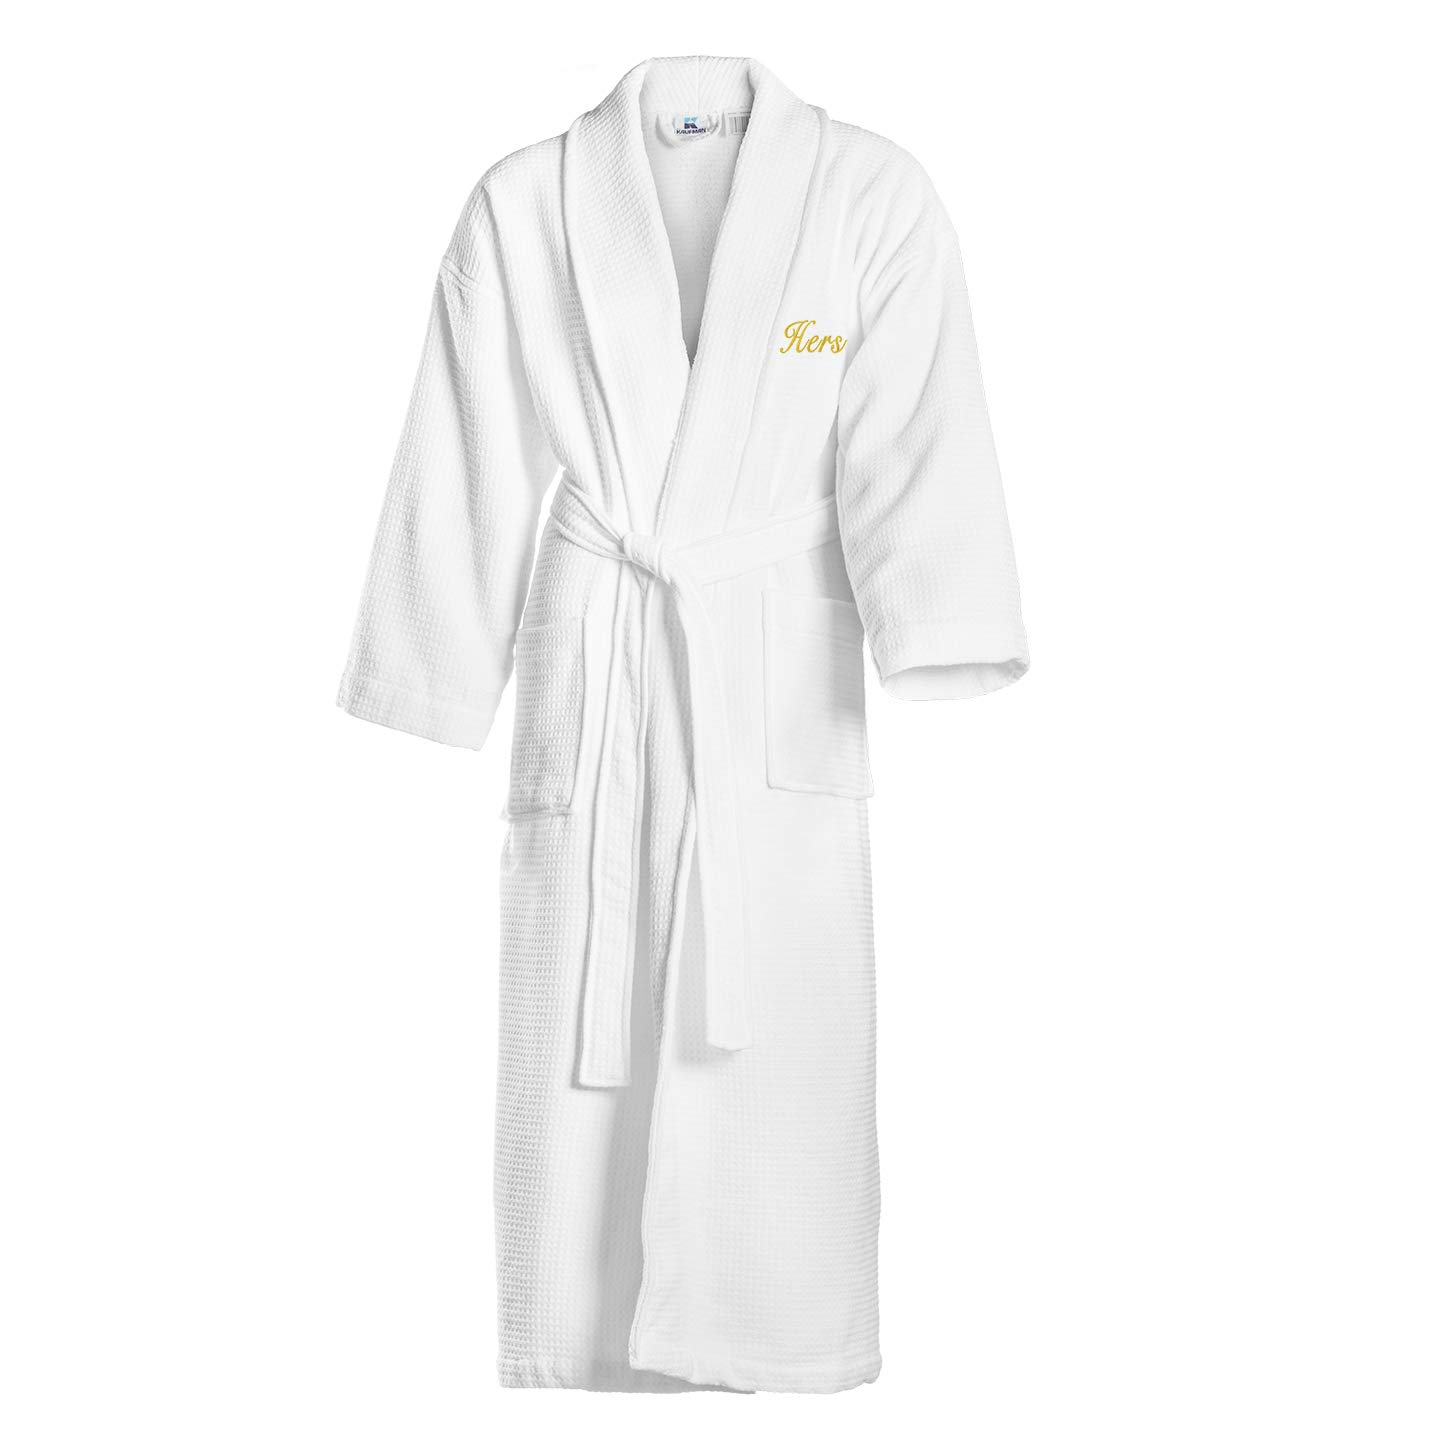 Kaufman - Terry Cloth Bathrobes 100% Cotton - His and Hers Embroidered Waffle Shawl Set of Robes with His and Hers White Towel Set 30''x58'' 4-PK by Ben Kaufman Sales (Image #3)